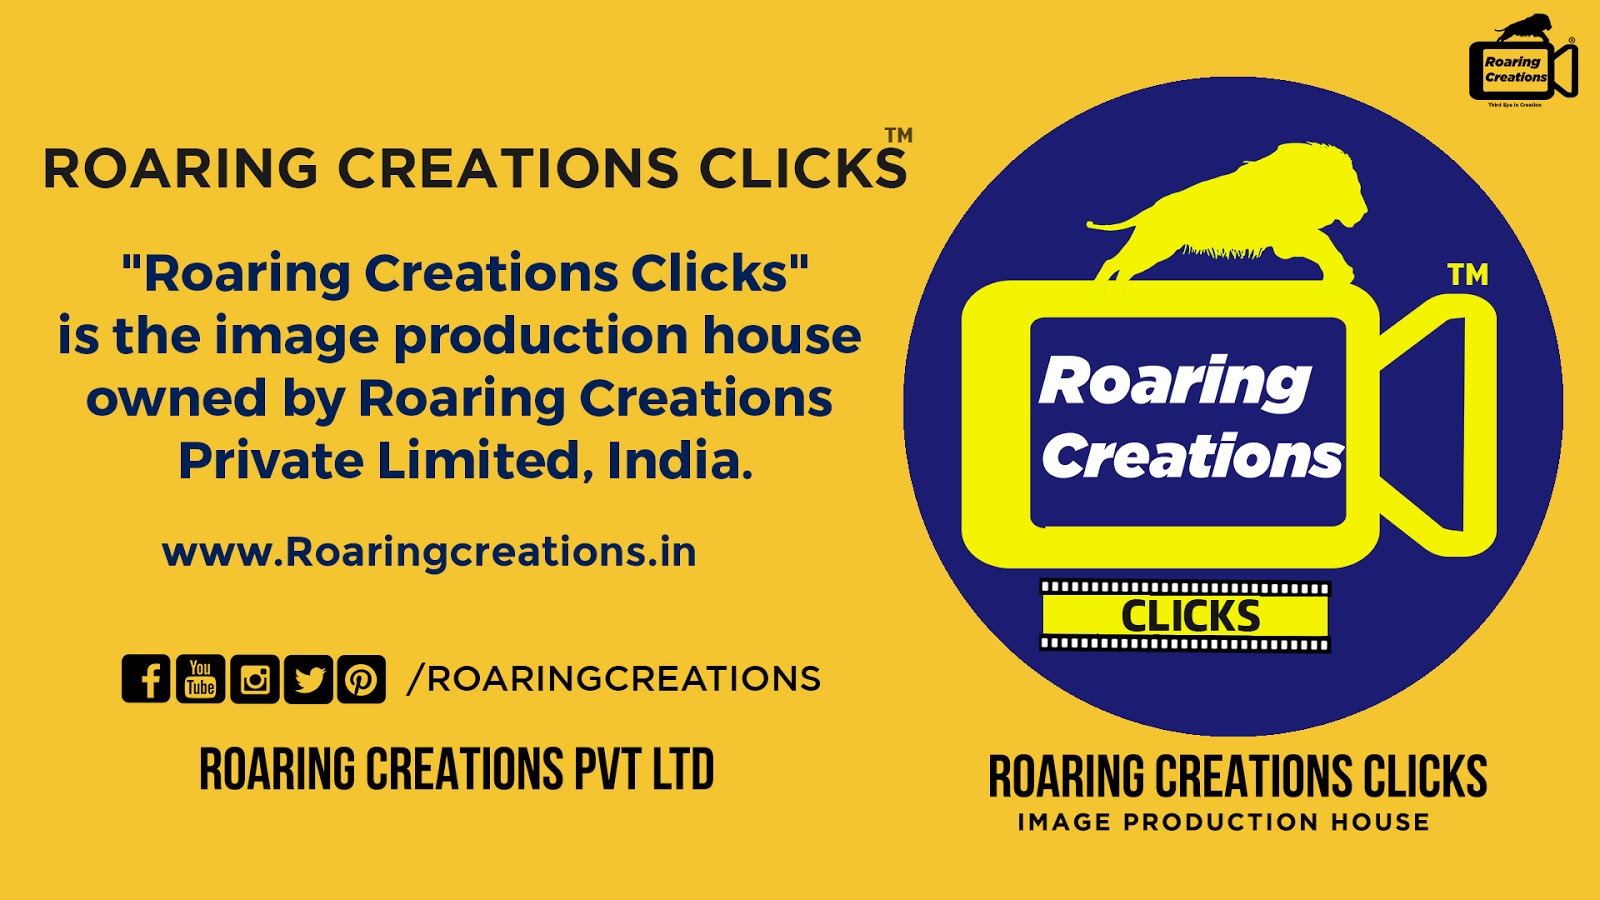 About Roaring Creations Clicks